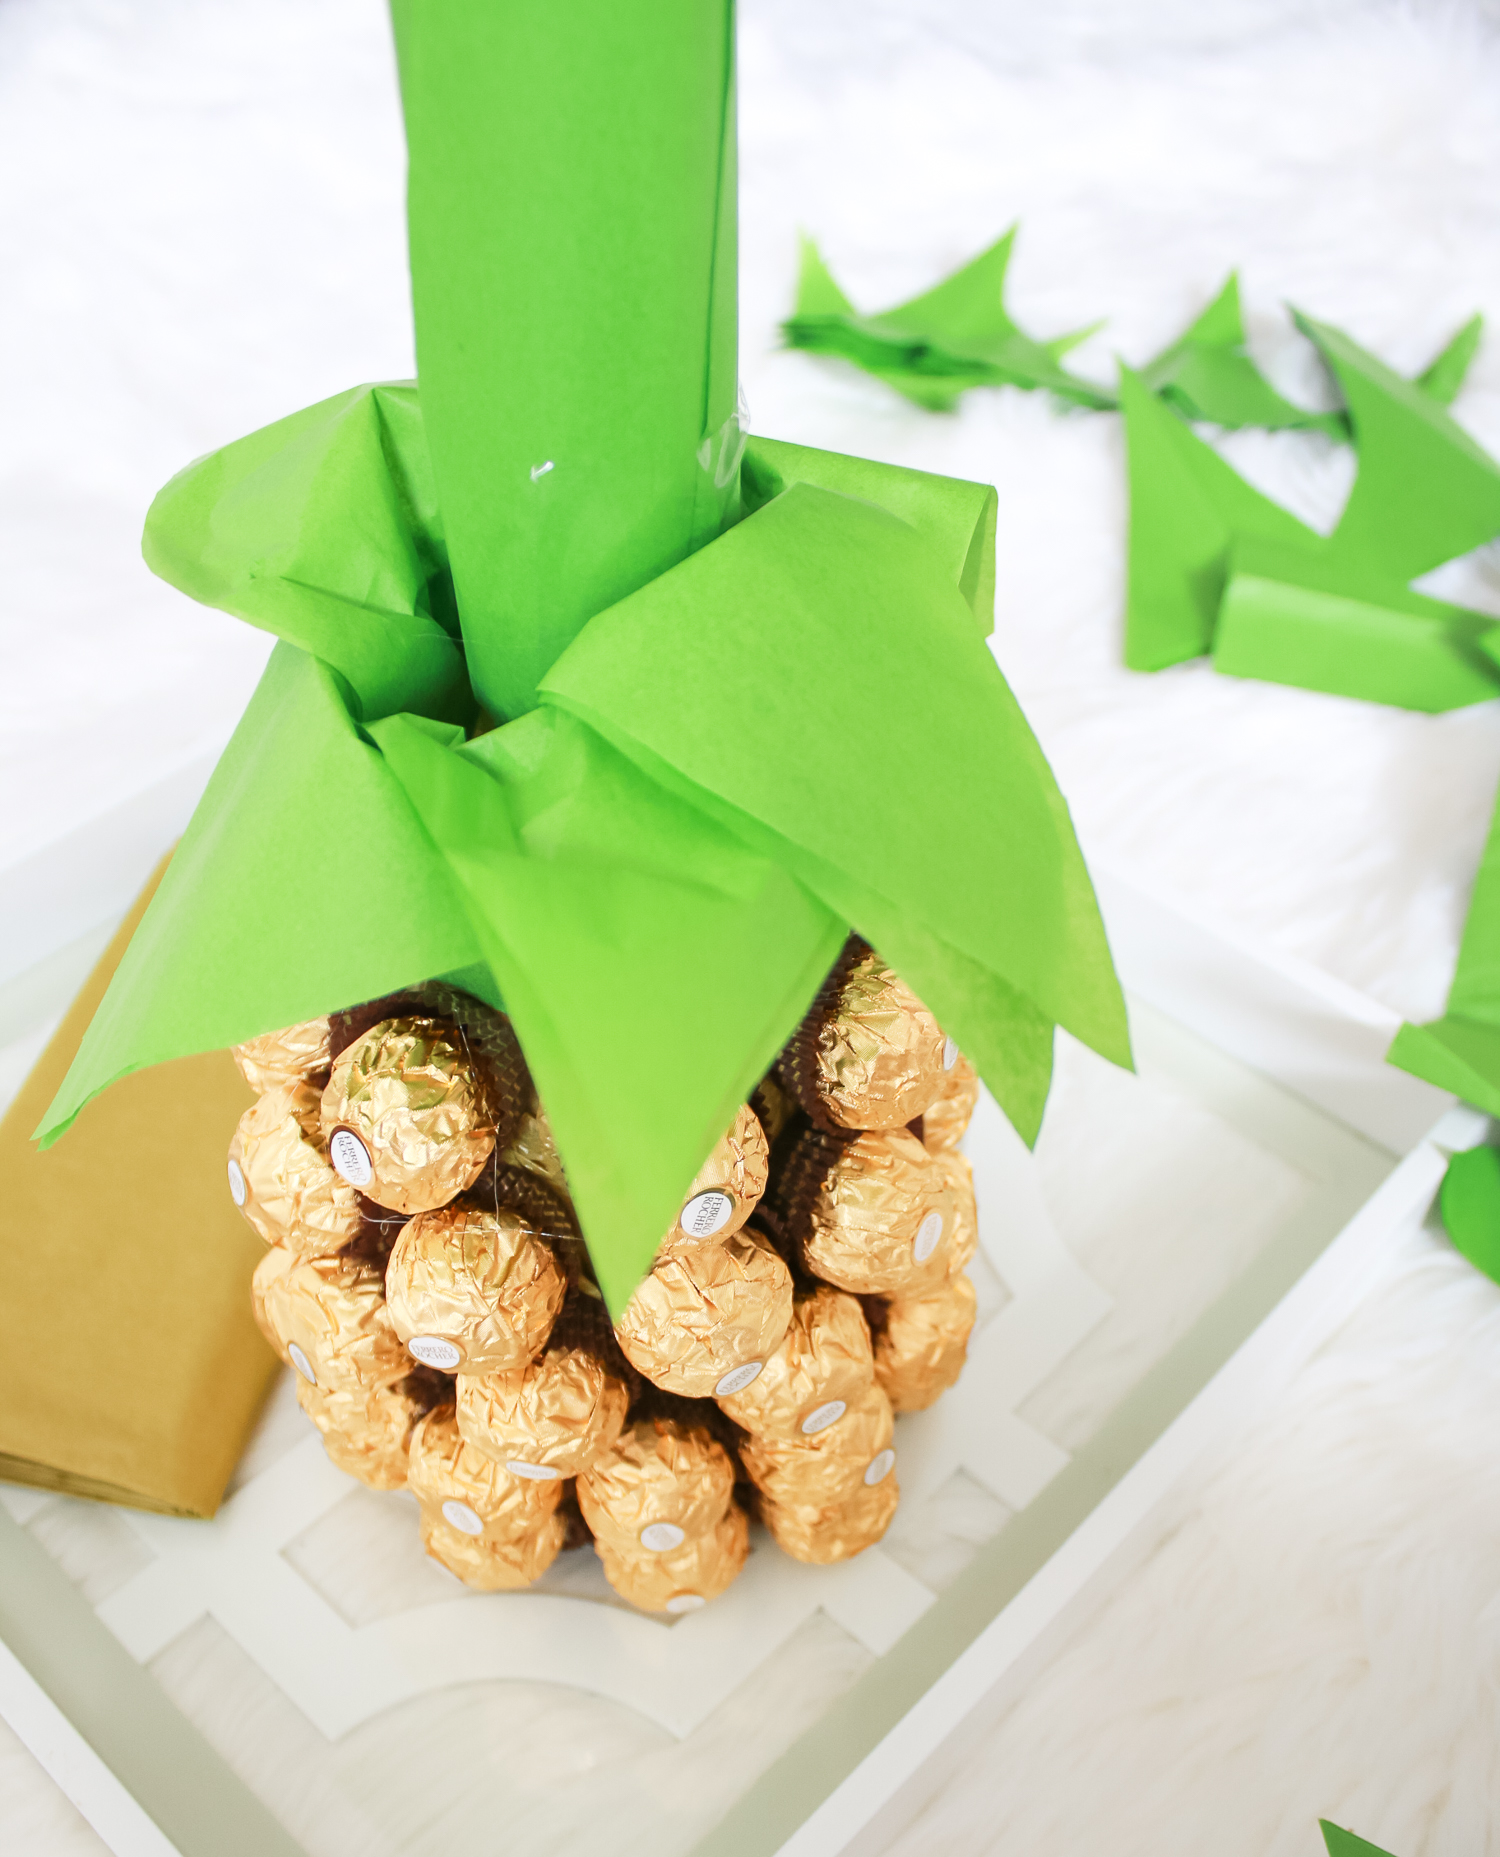 Looking for DIY housewarming gifts? Look no further than this adorable chocolate-covered champagne pineapple by southern blogger Stephanie Ziajka from Diary of a Debutante